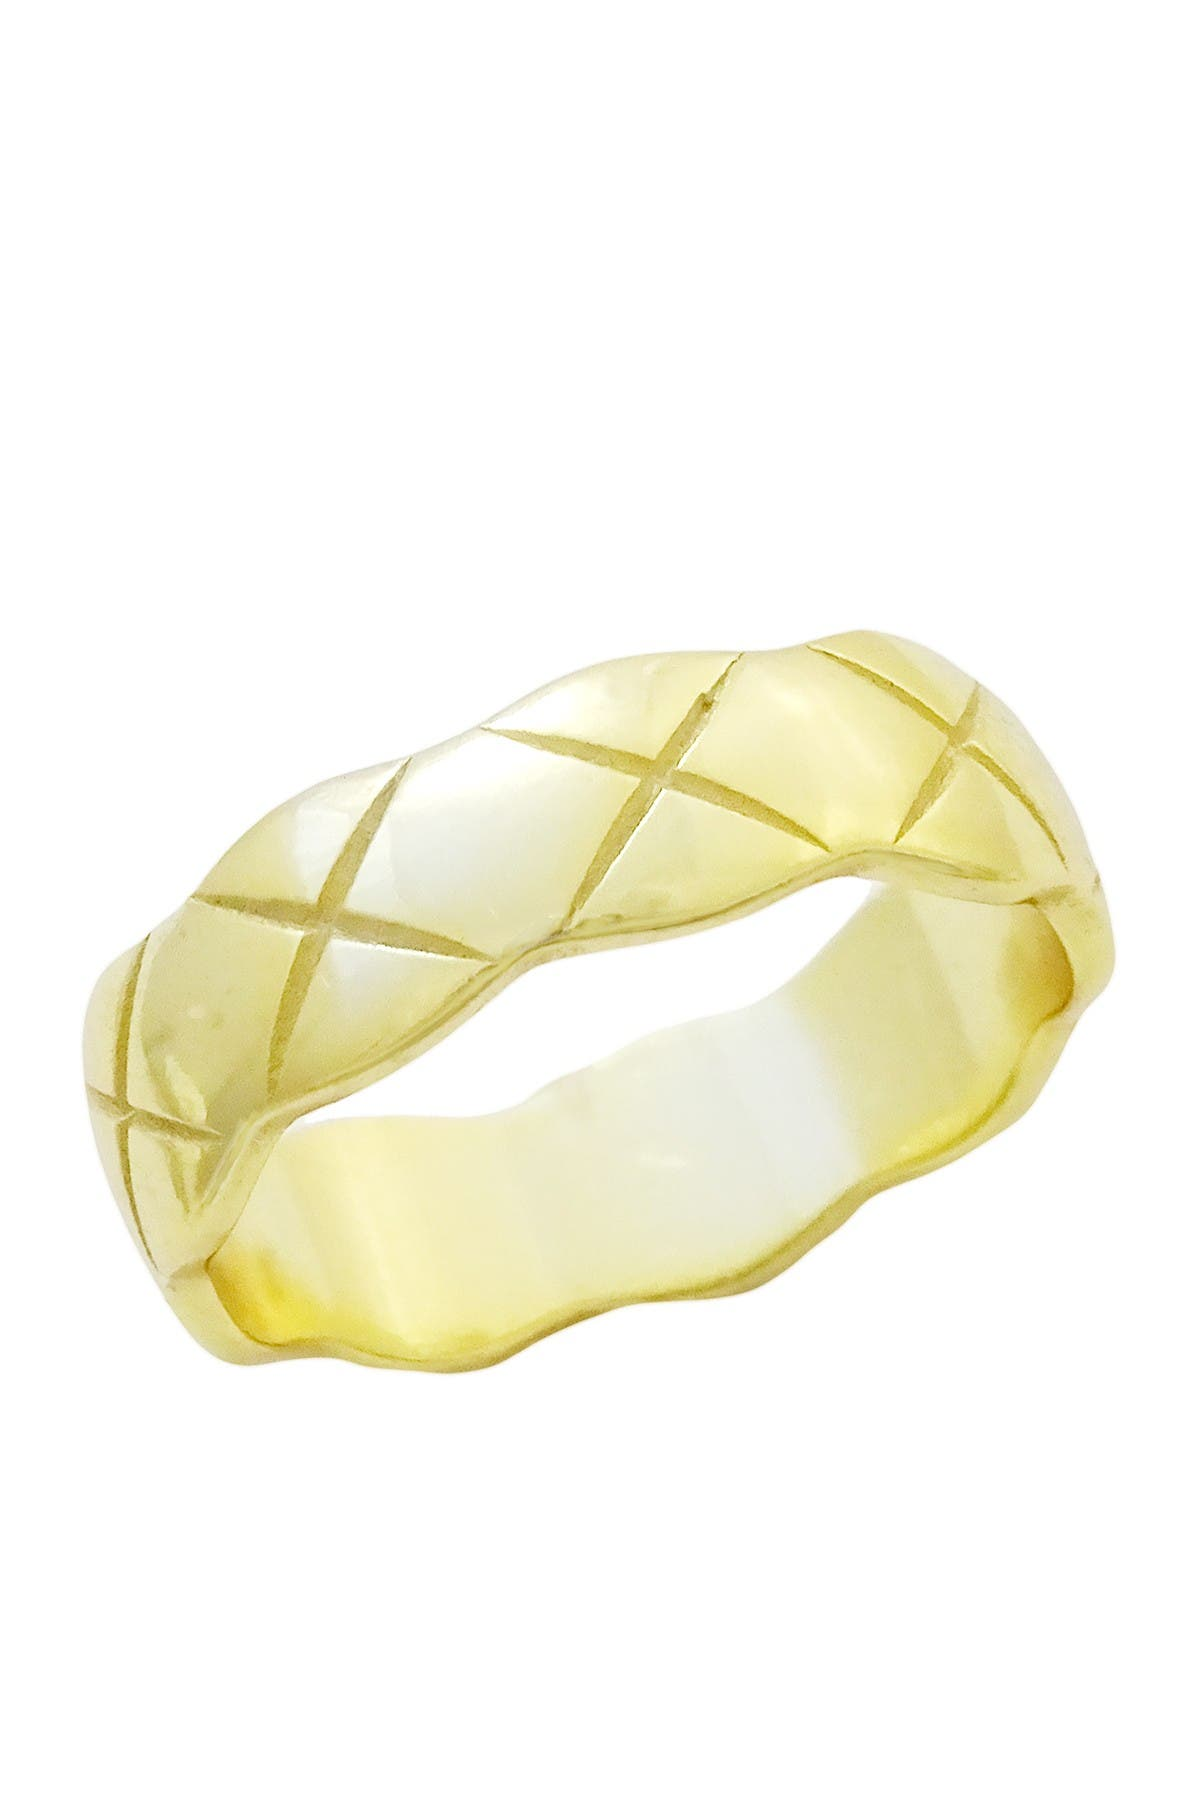 Image of Savvy Cie 18K Yellow Gold Vermeil Wide Scalloped Band Ring